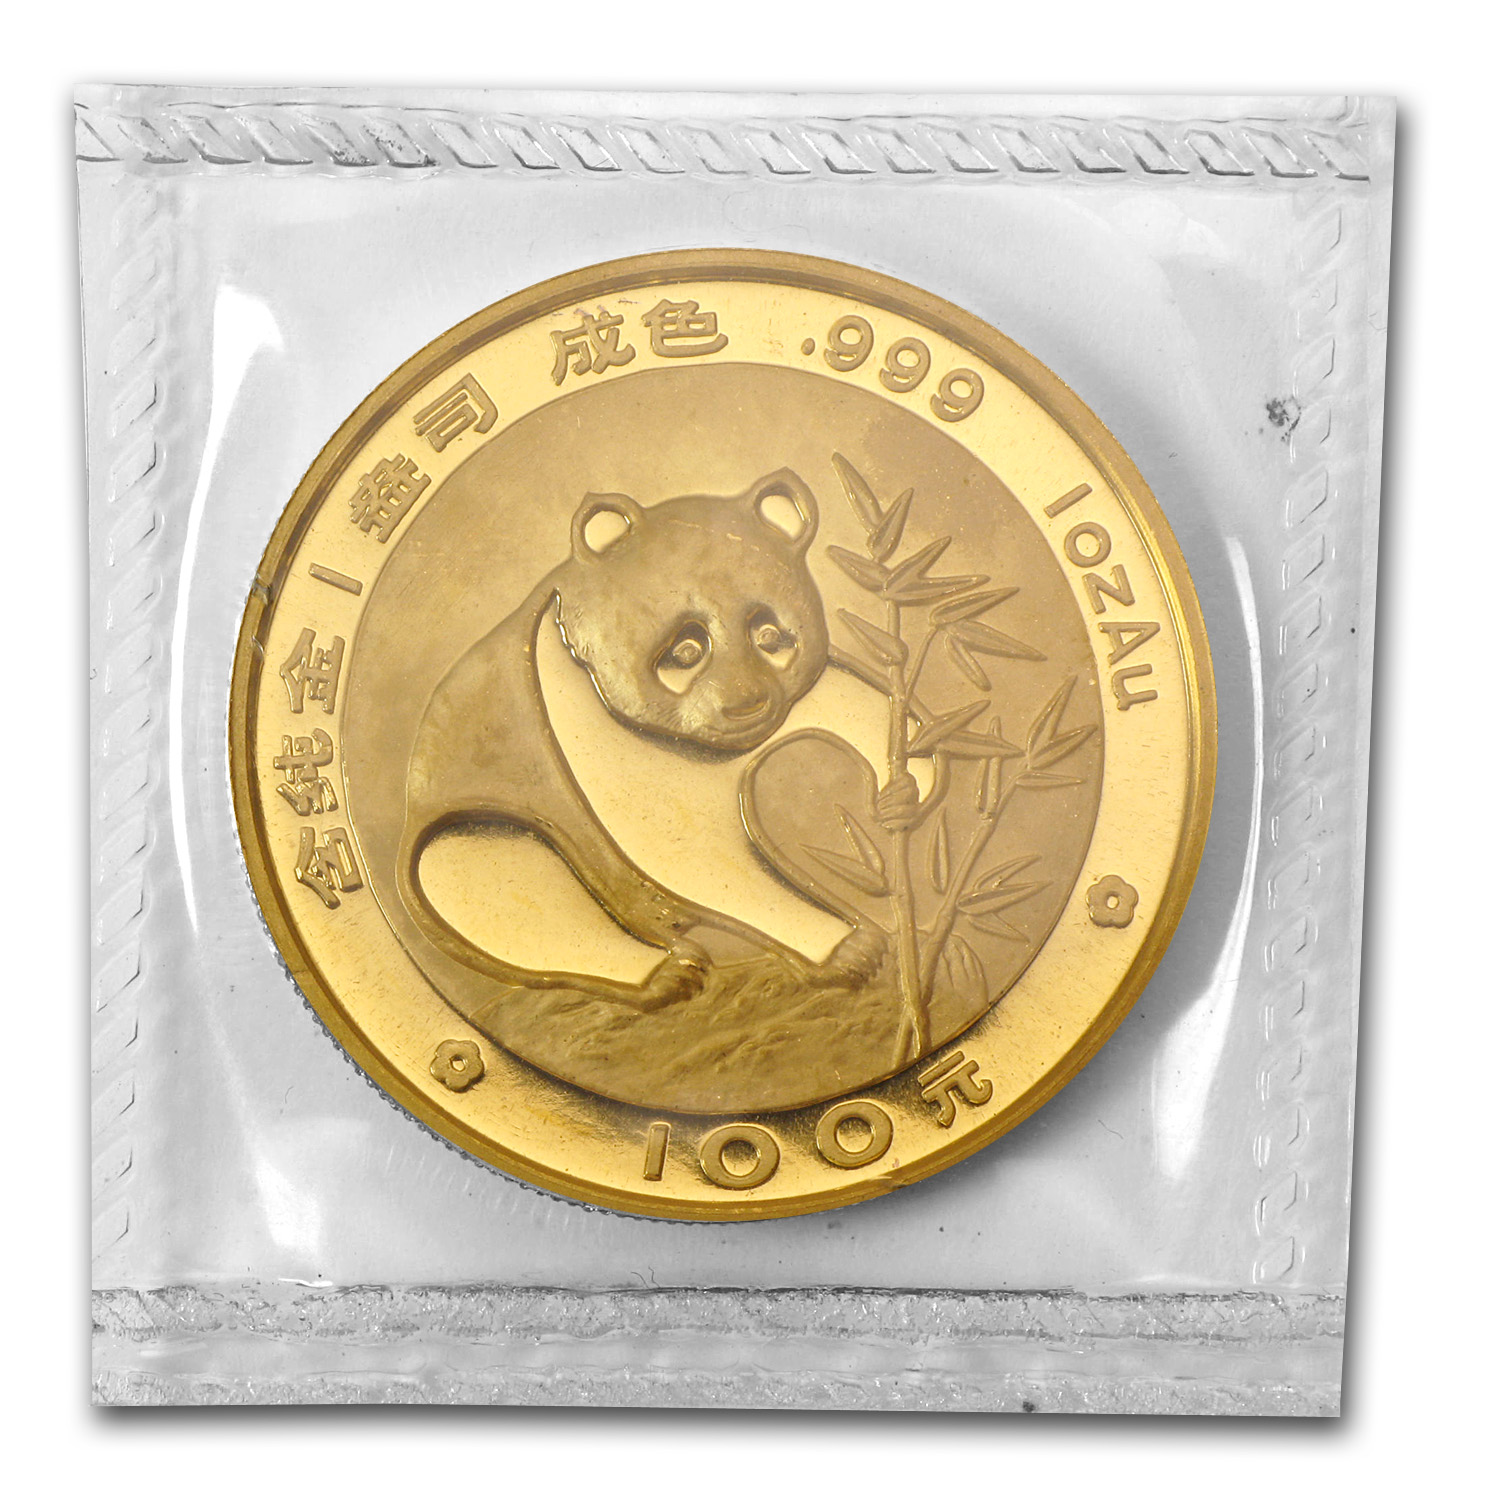 1988 1 oz Gold Chinese Panda (Sealed)